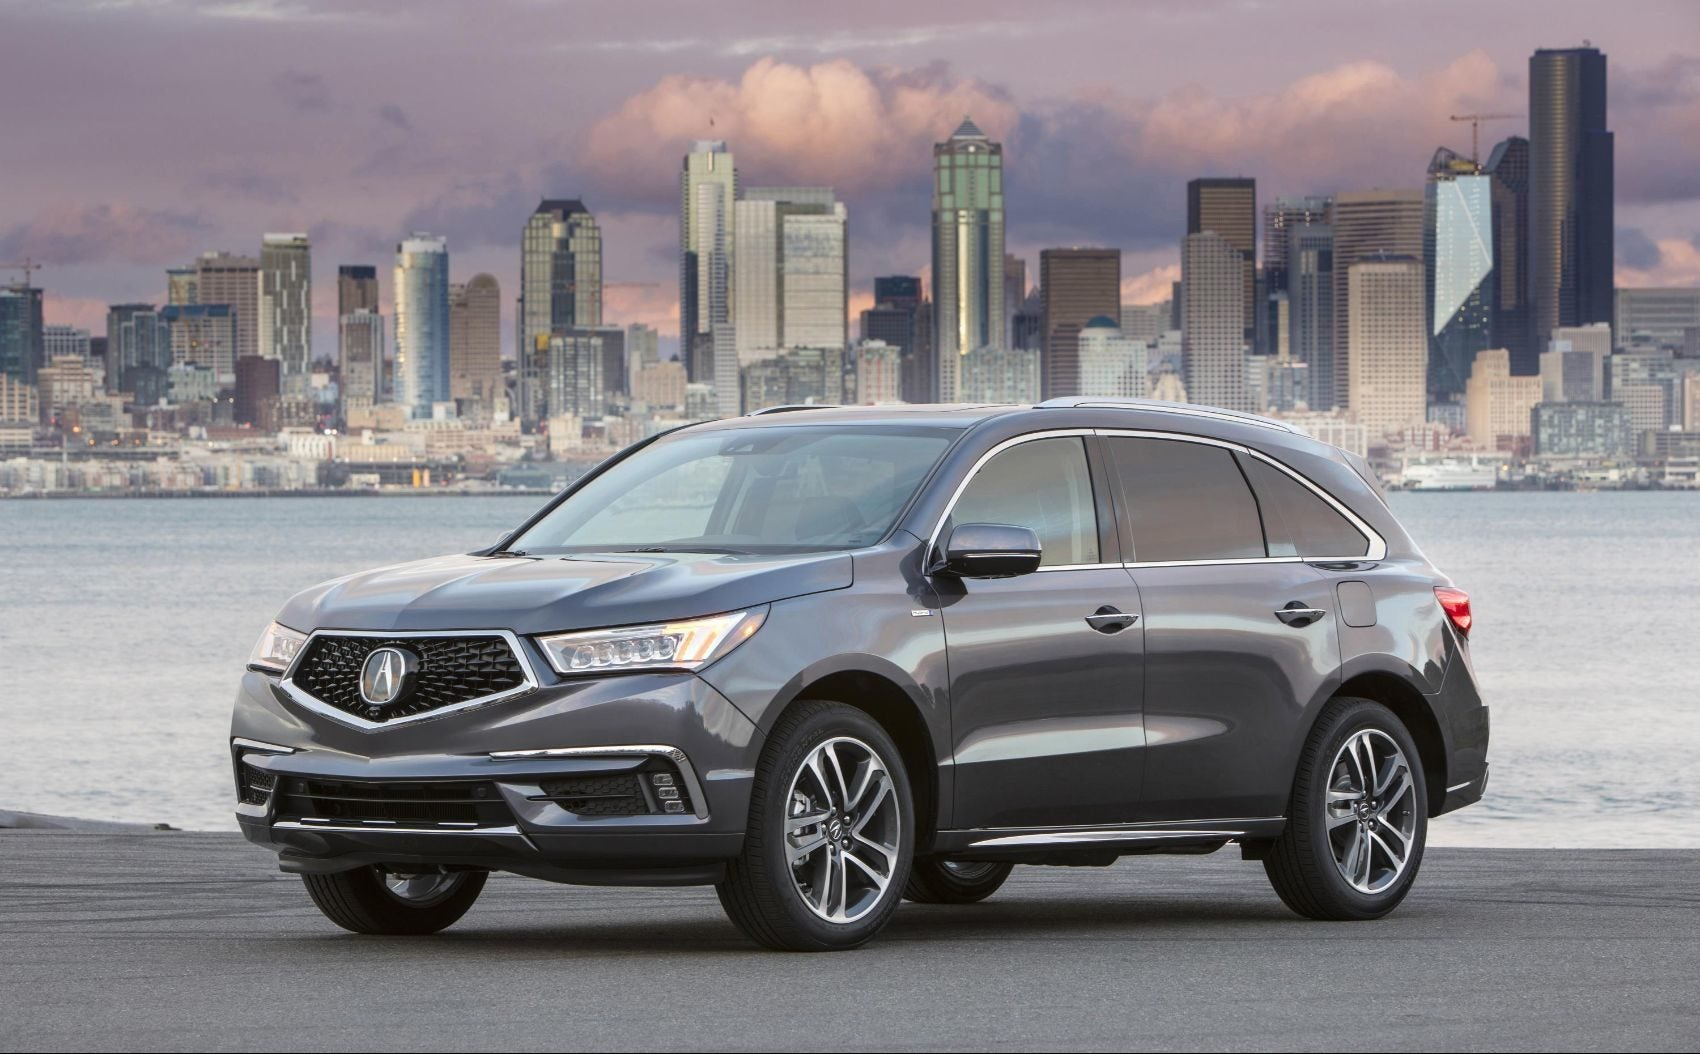 2020 Acura MDX Overview